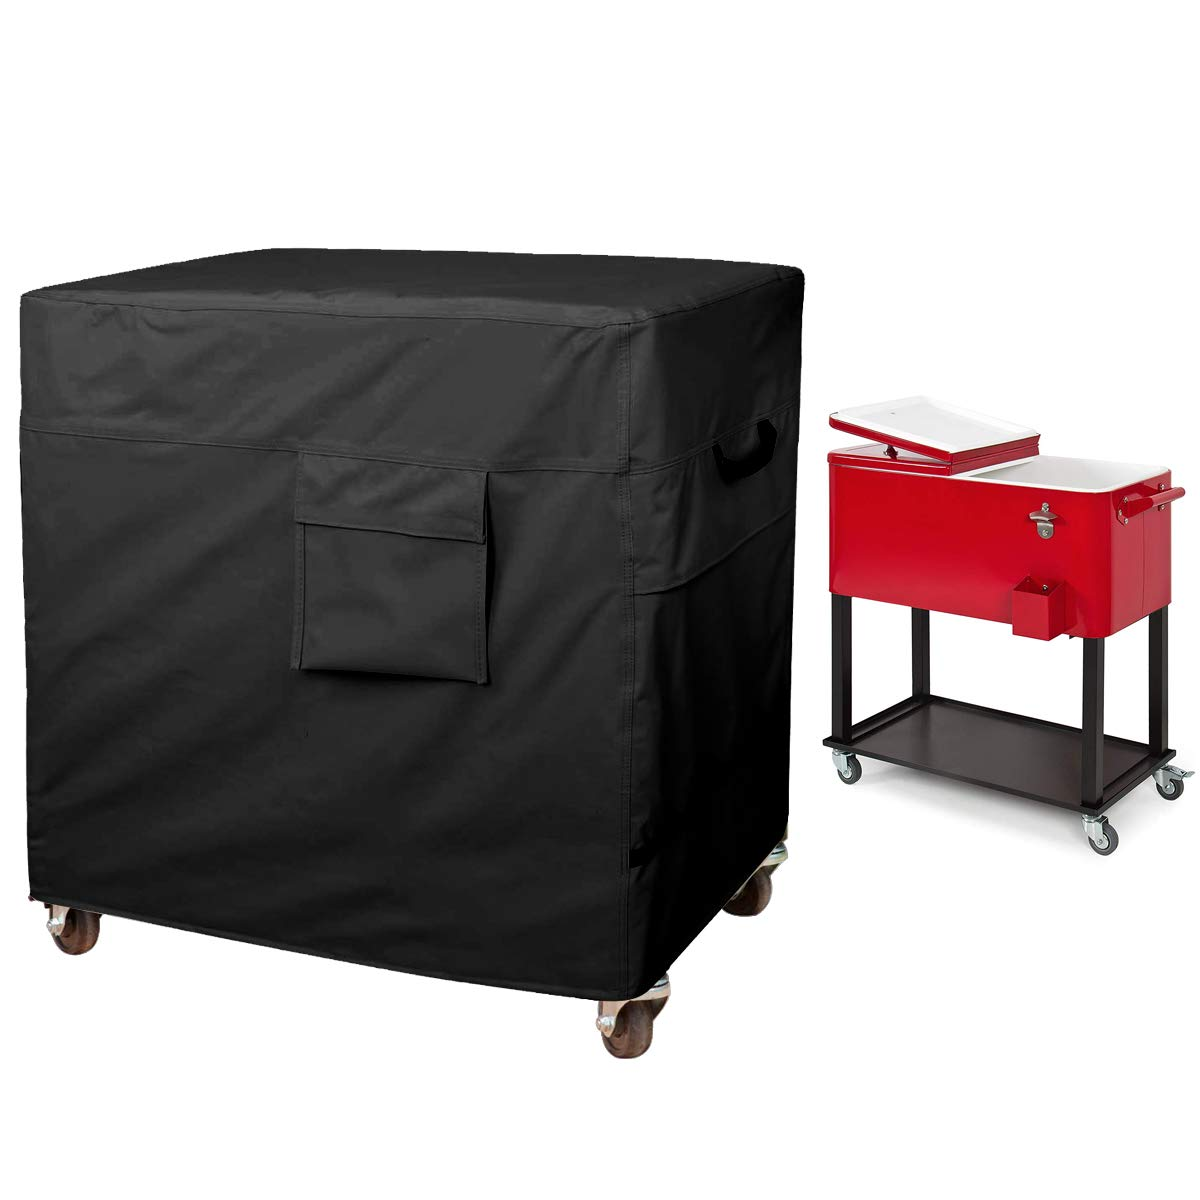 80 Quart Rolling Ice Chest Cover, Patio Party Bar Drink Cooler Cart Cloth Cover, Patio Cooler Protective Cover, Cooler Cart Dust Cover, Waterproof And Universal Size (43''L x 22''W x 32''H, Black) by Hersent